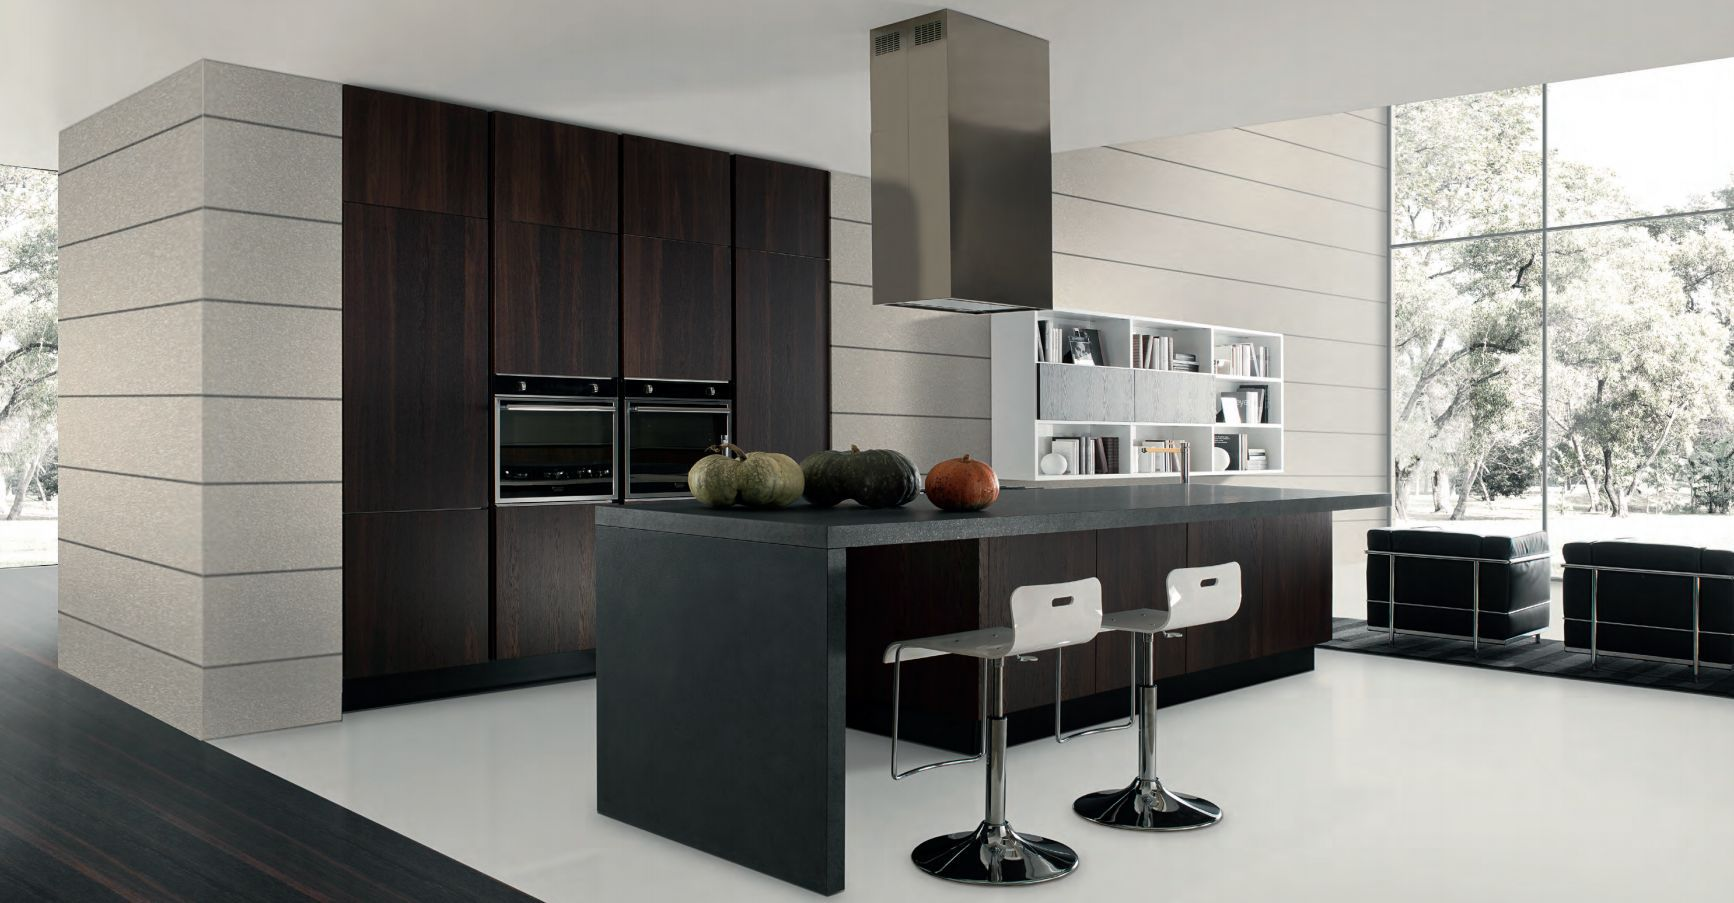 Kitchens So Modern, They Deserve Another Adjective on high end kitchen tools, high end kitchen pendant lights, high end storage cabinets, high end oak kitchens, high end kitchen appliances, high end kitchen canisters, high end railings, high end roofing, high end kitchen interiors, high end shelves, high end kitchen hoods, high end trim, high end kitchen carts, high end kitchen design, high end kitchen knobs, high end kitchen plans, high-end custom cabinets, high end kitchen chairs, high end kitchen tiles, high end kitchen showroom,